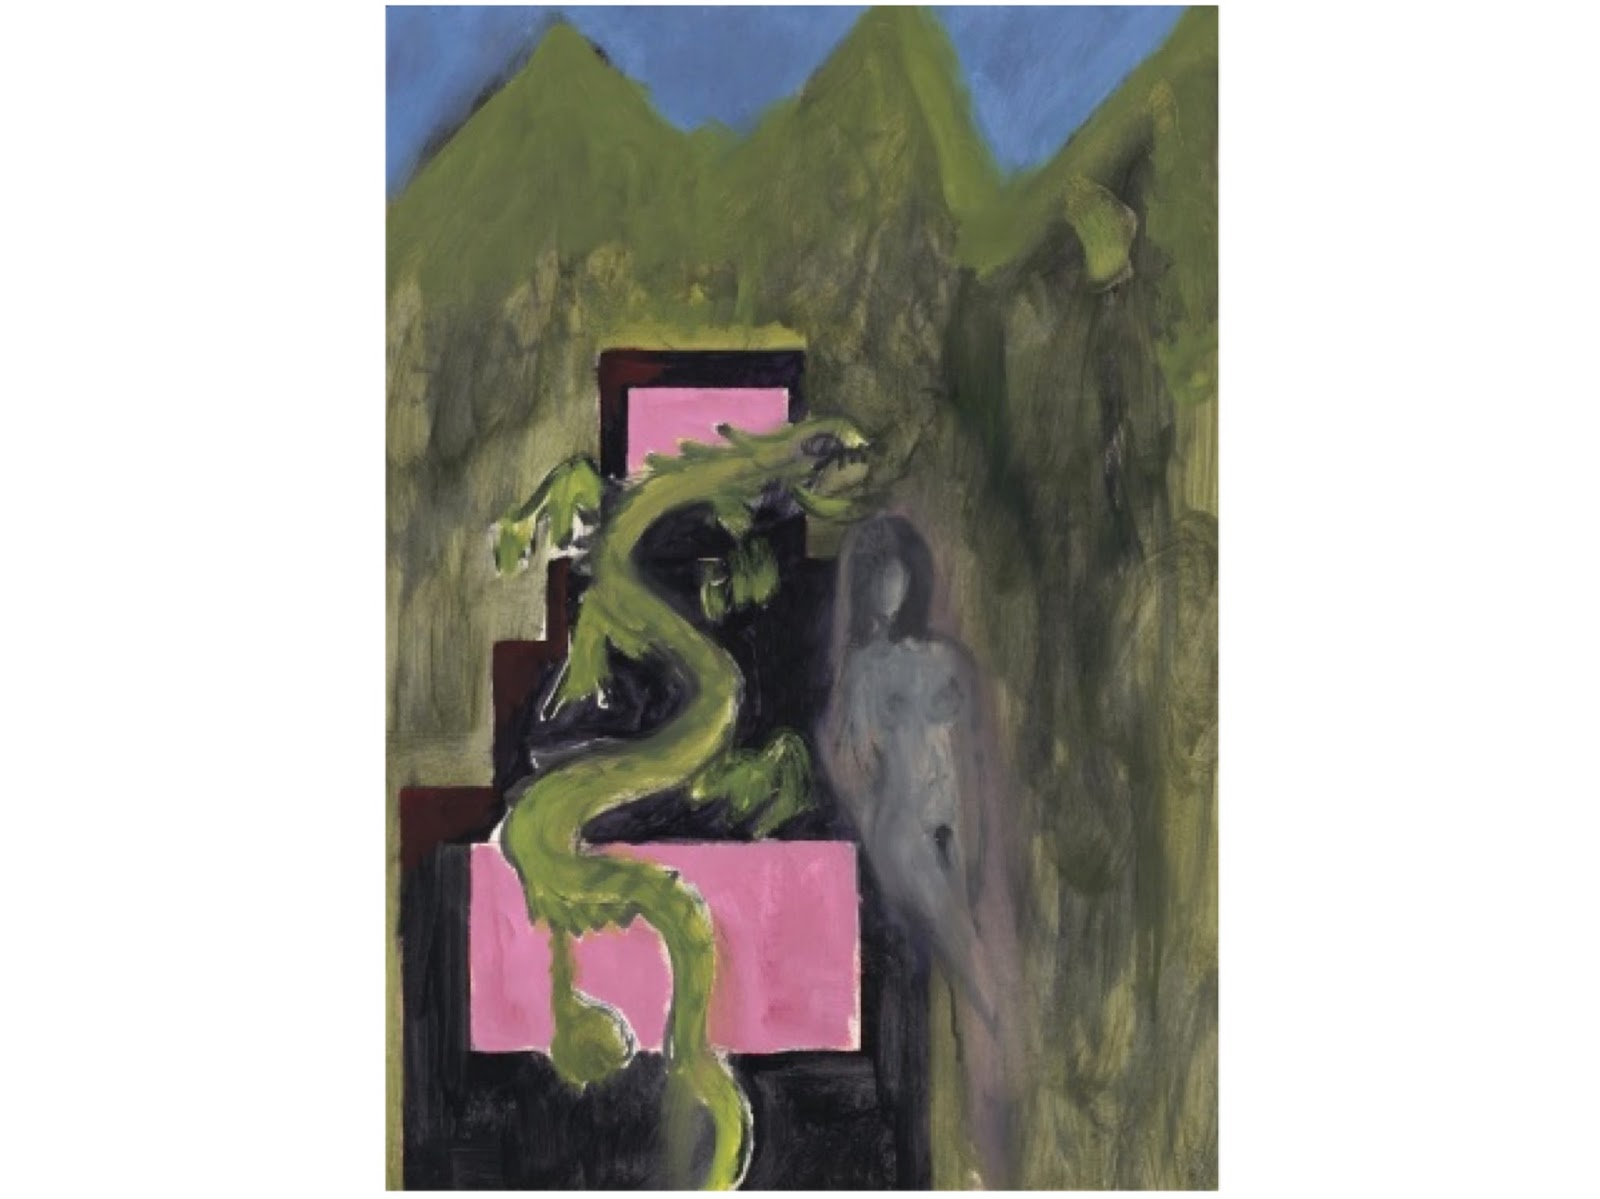 Enter the Dragon, Peter Doig